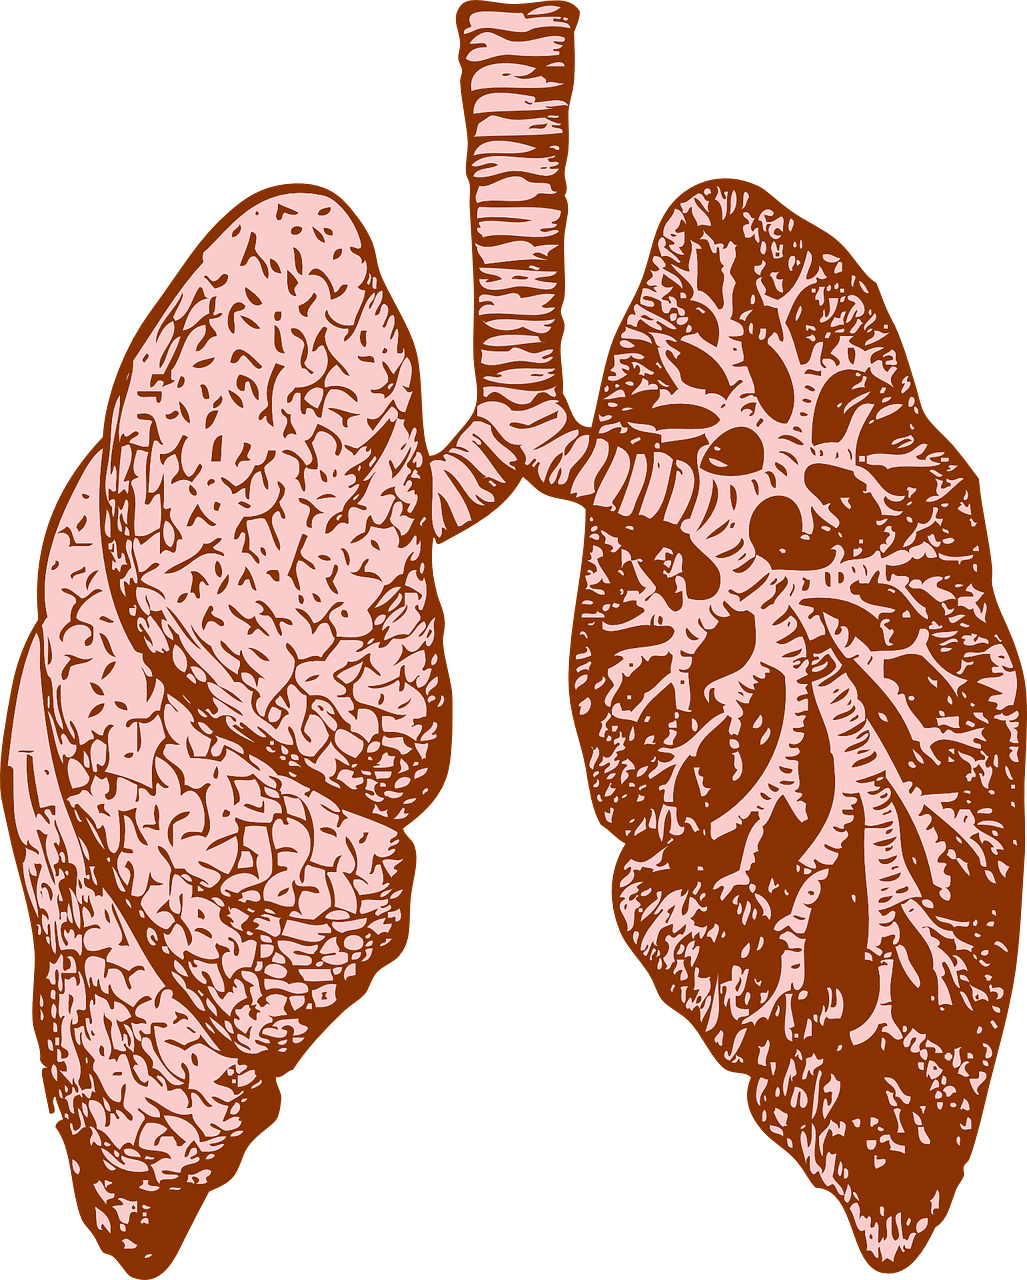 svg freeuse download Consume cannabis while keeping. Lungs clipart lung smoker.